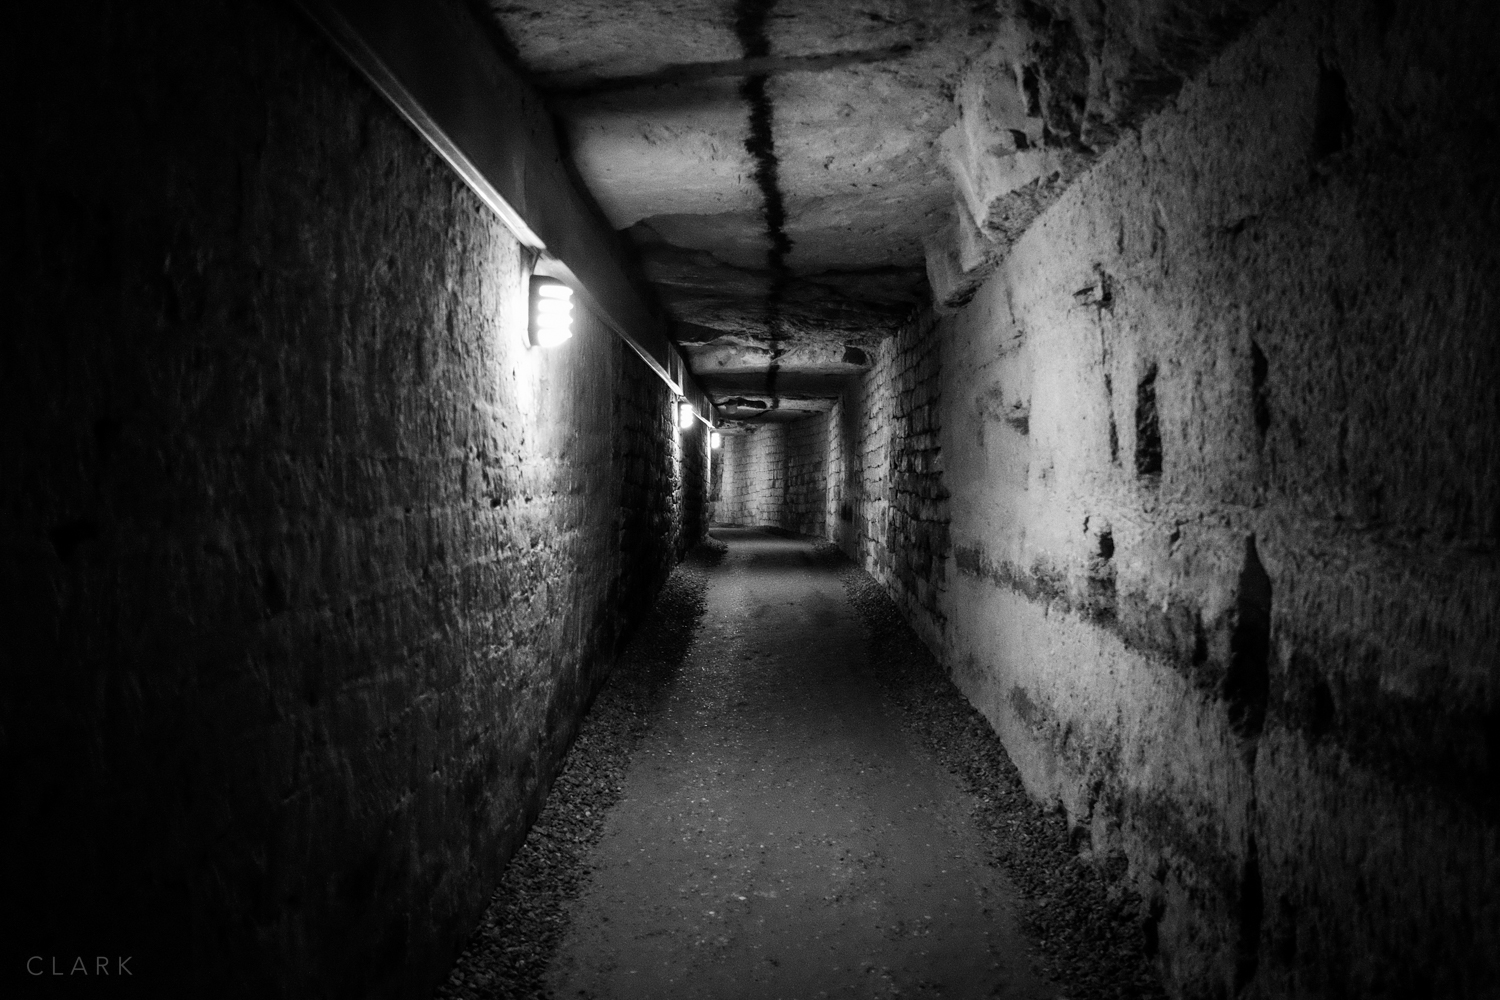 008_DerekClarkPhoto-Paris_Catacombs.jpg